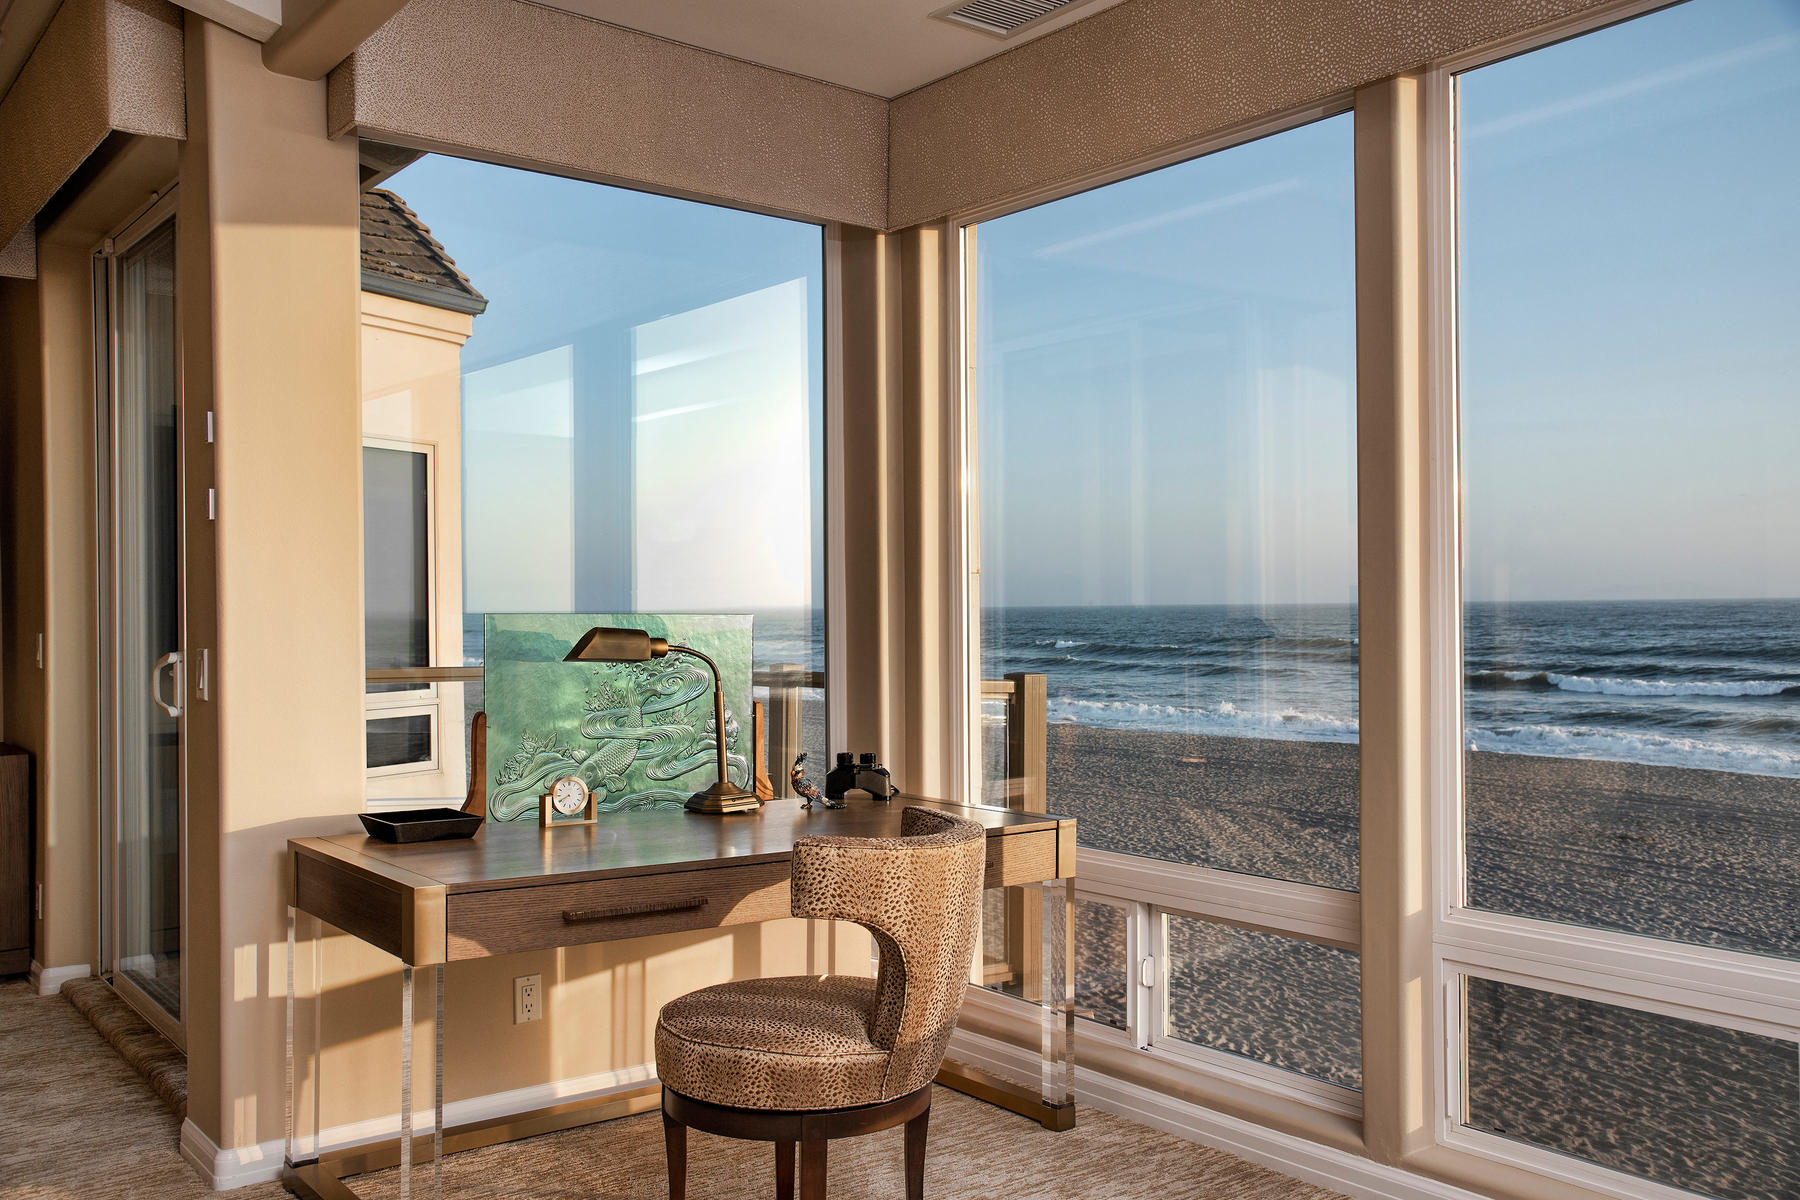 Additional photo for property listing at 1073 Mandalay Beach Road 1073 Mandalay Beach Road Oxnard, California 93035 United States